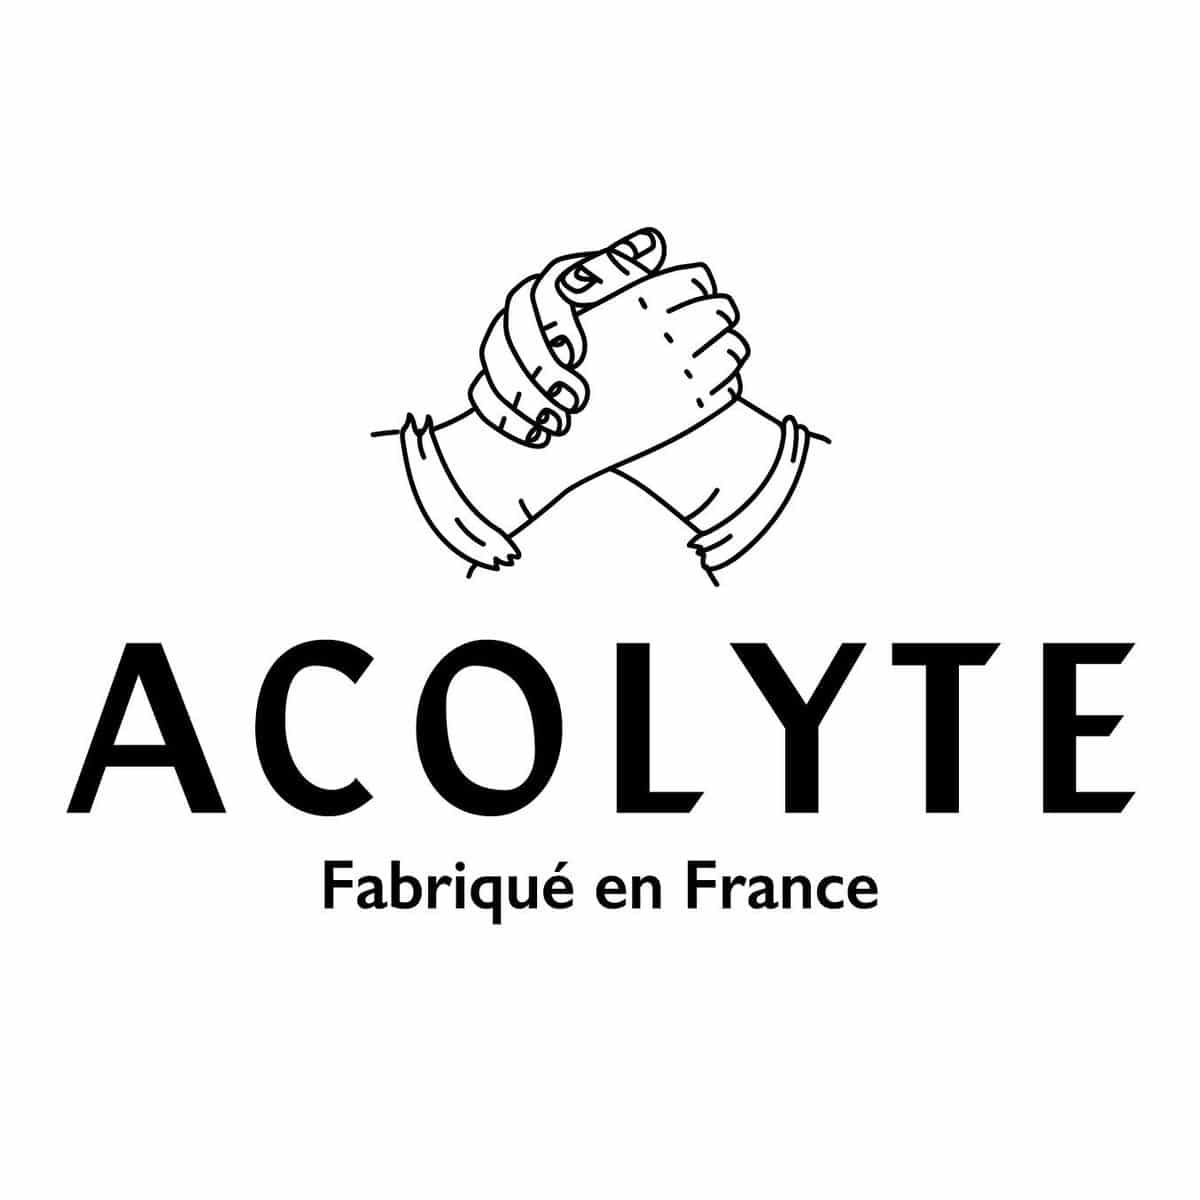 couteau acolyte logo